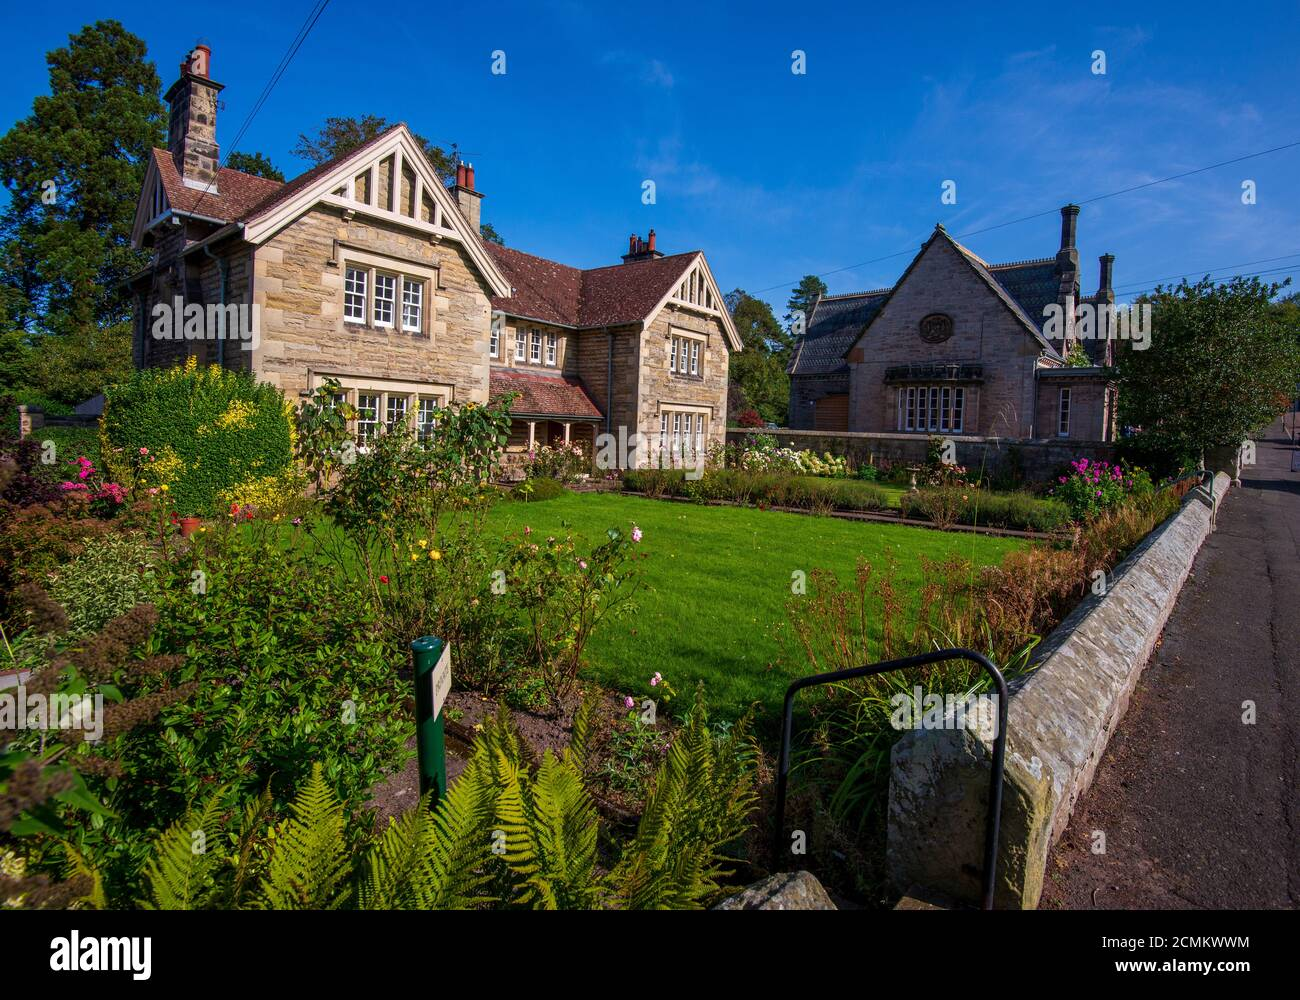 Ford village one of England's most northerly villages which was rebuilt in the 19th century by Lady Waterford Stock Photo